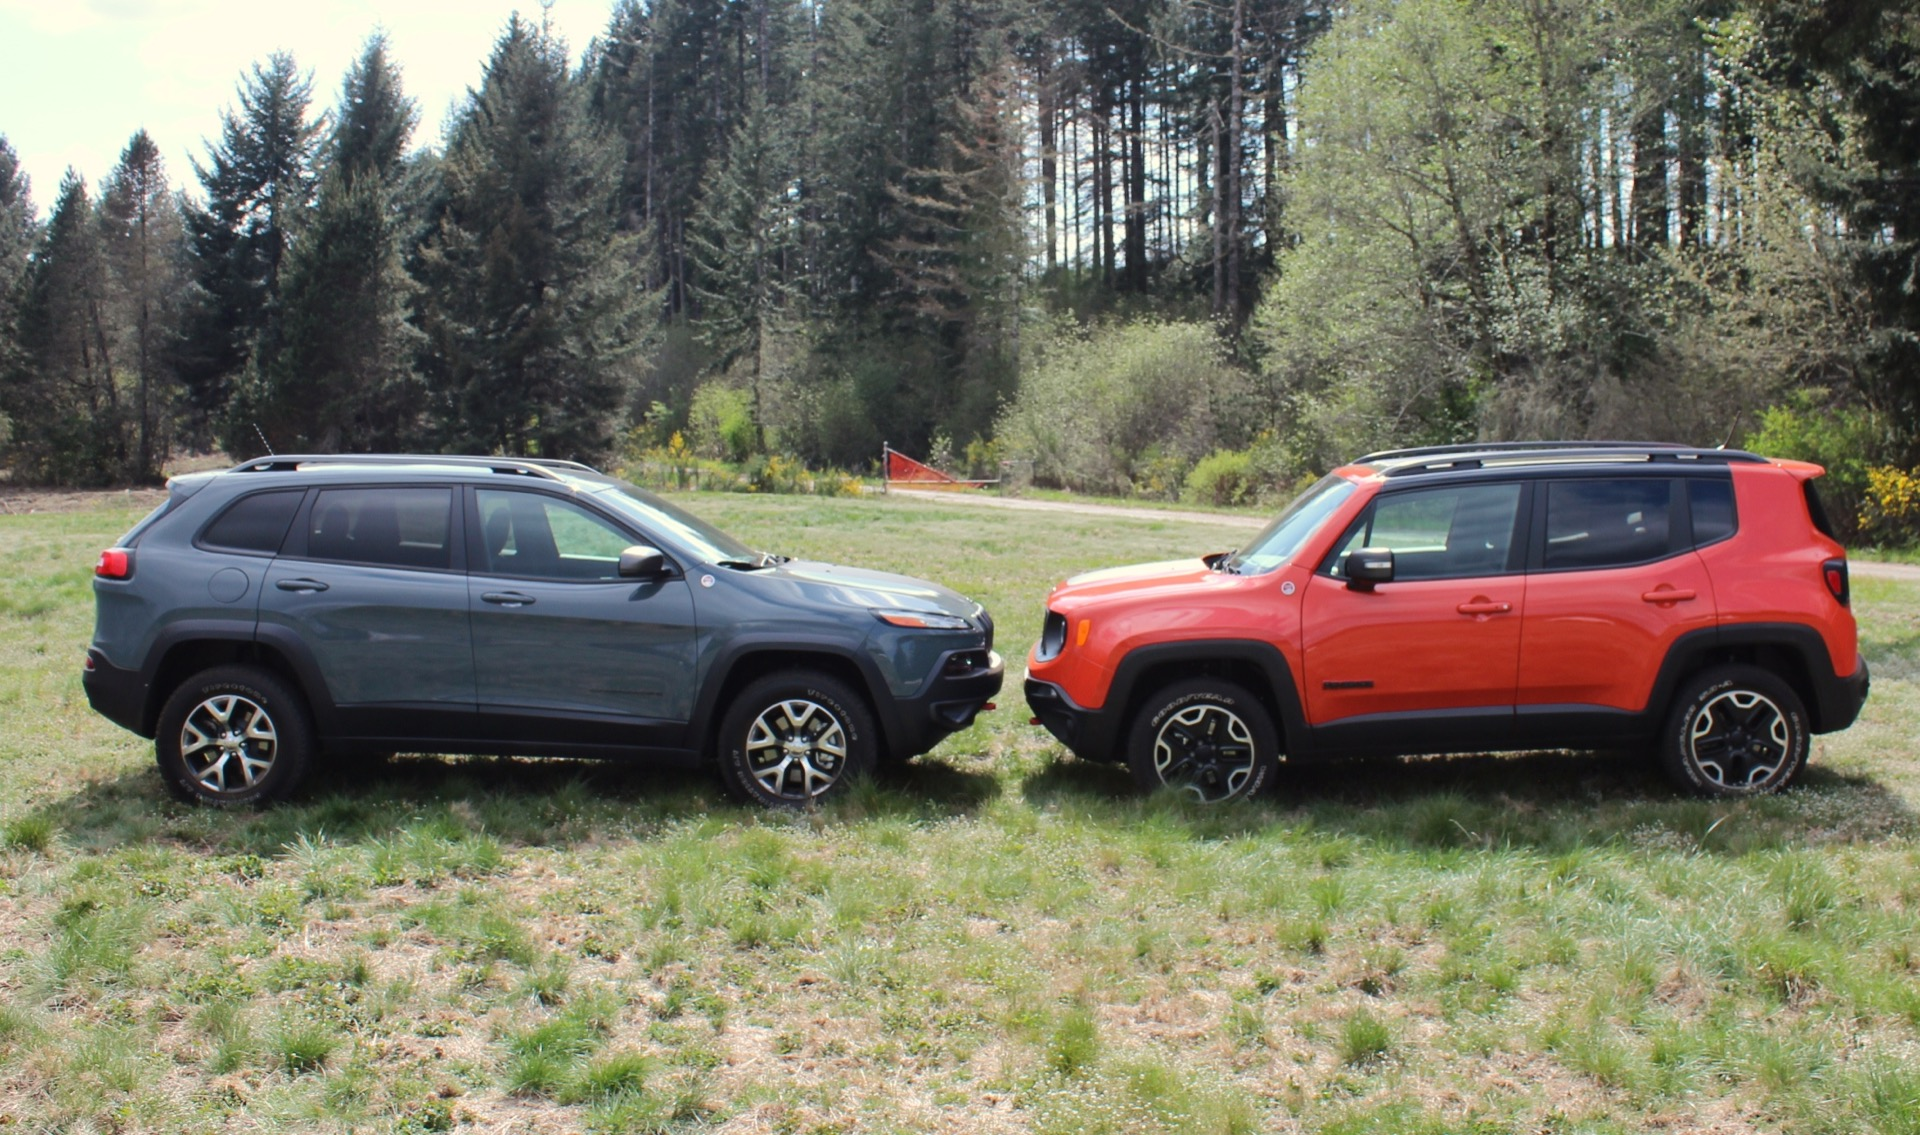 Tucson Dimensions 2017 >> Jeep Renegade Vs. Jeep Cherokee: How Do They Size Up?